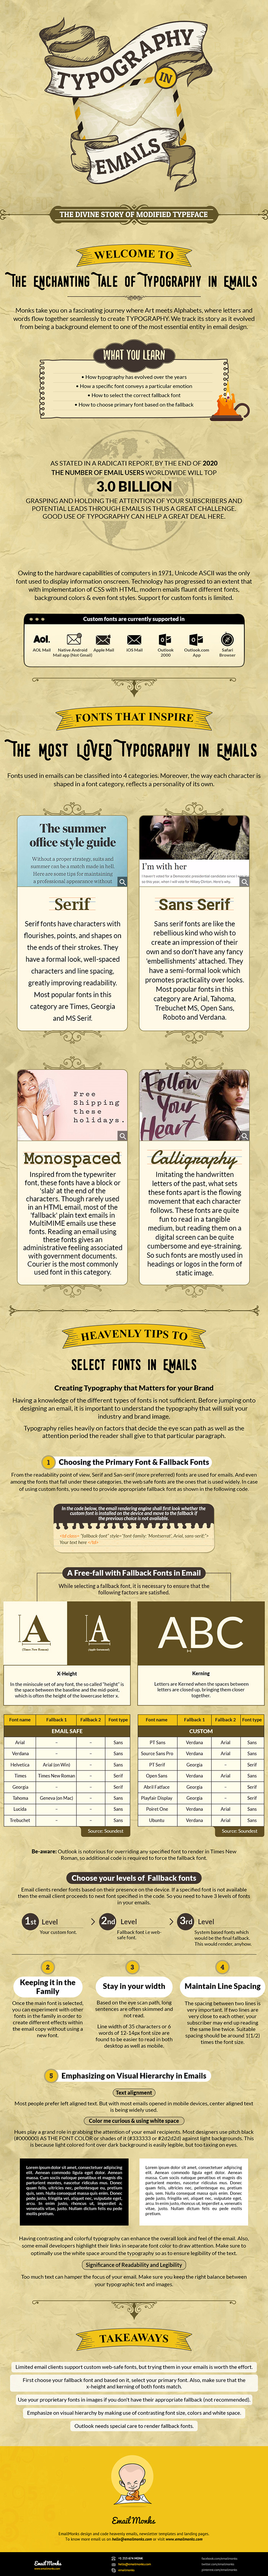 typography in email infographic